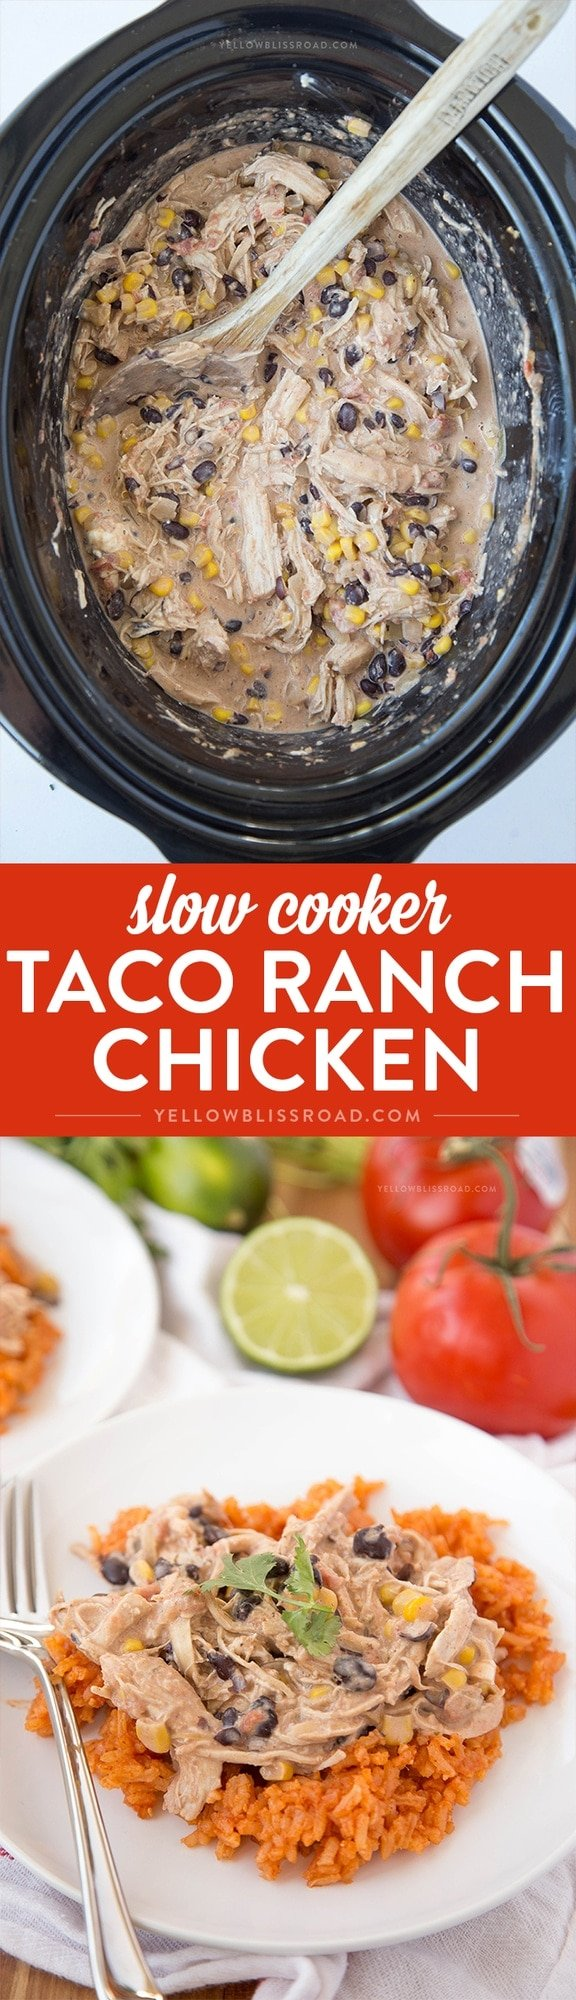 Slow Cooker Taco Ranch Chicken - A weeknight meal you don't have to turn your oven on for!